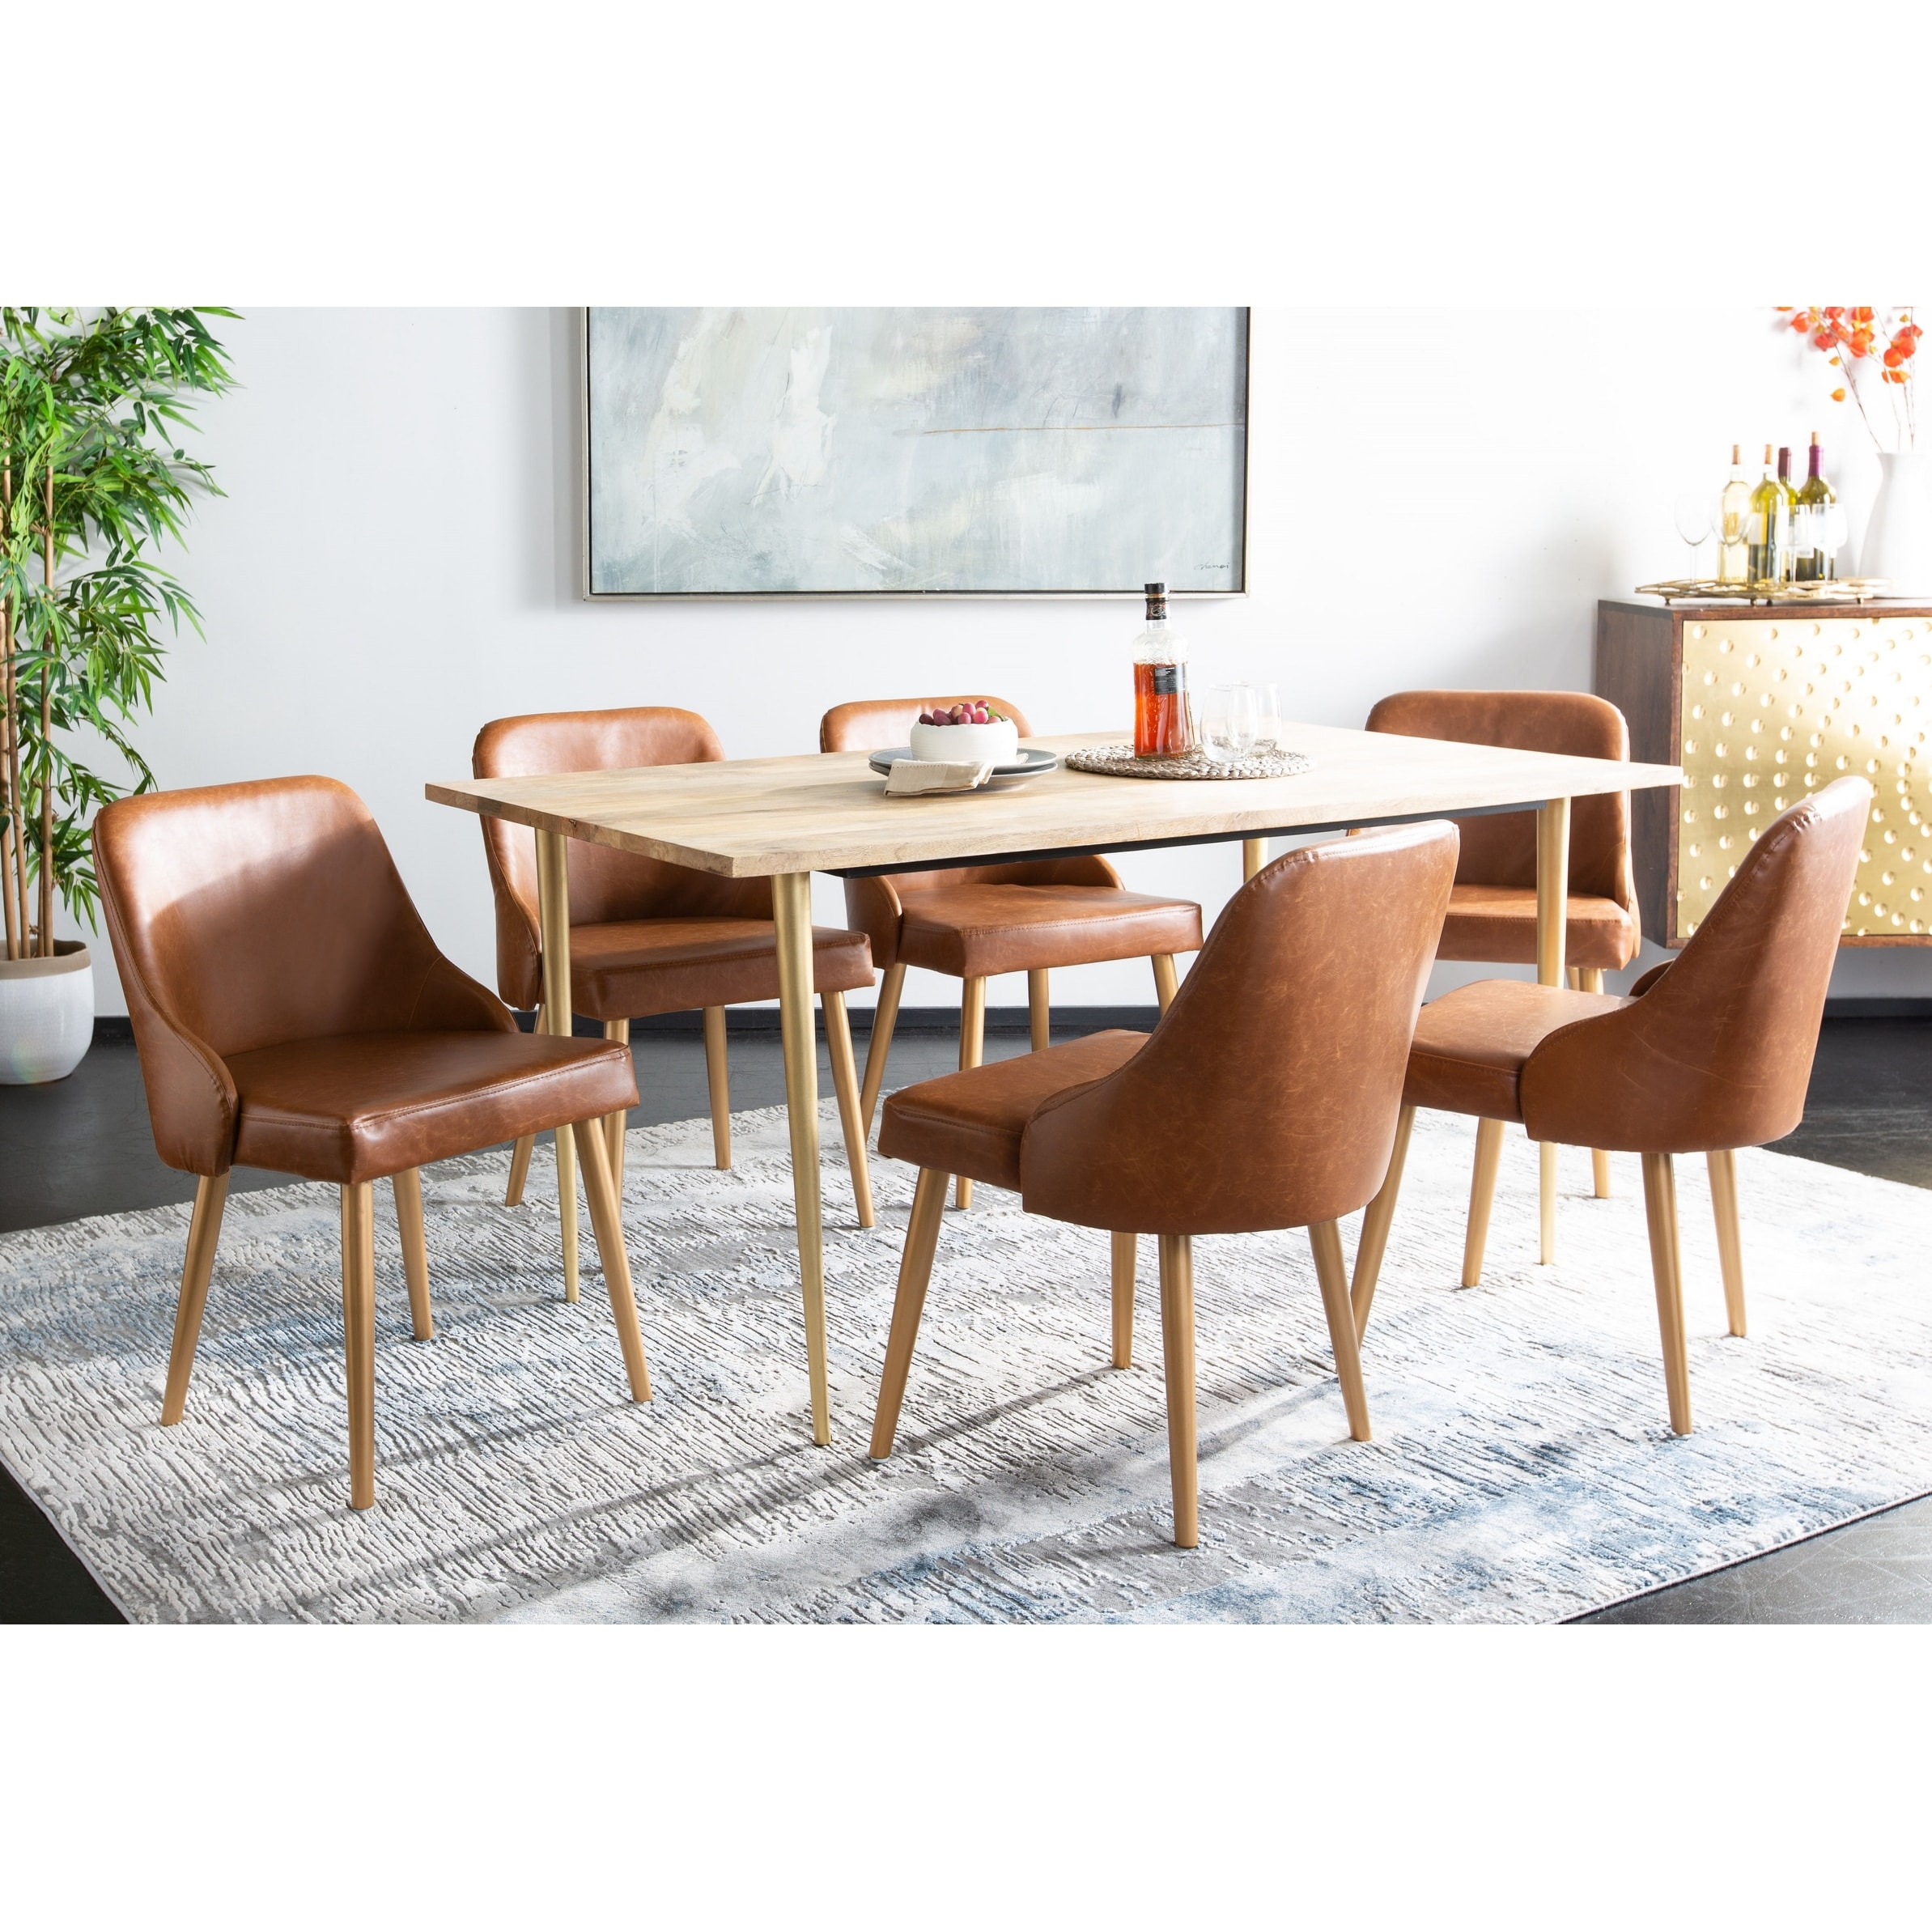 Safavieh 18 3 Lulu Upholstered Dining Chair Light Brown Gold Set Of 2 21 X 22 X 31 On Sale Overstock 22363471